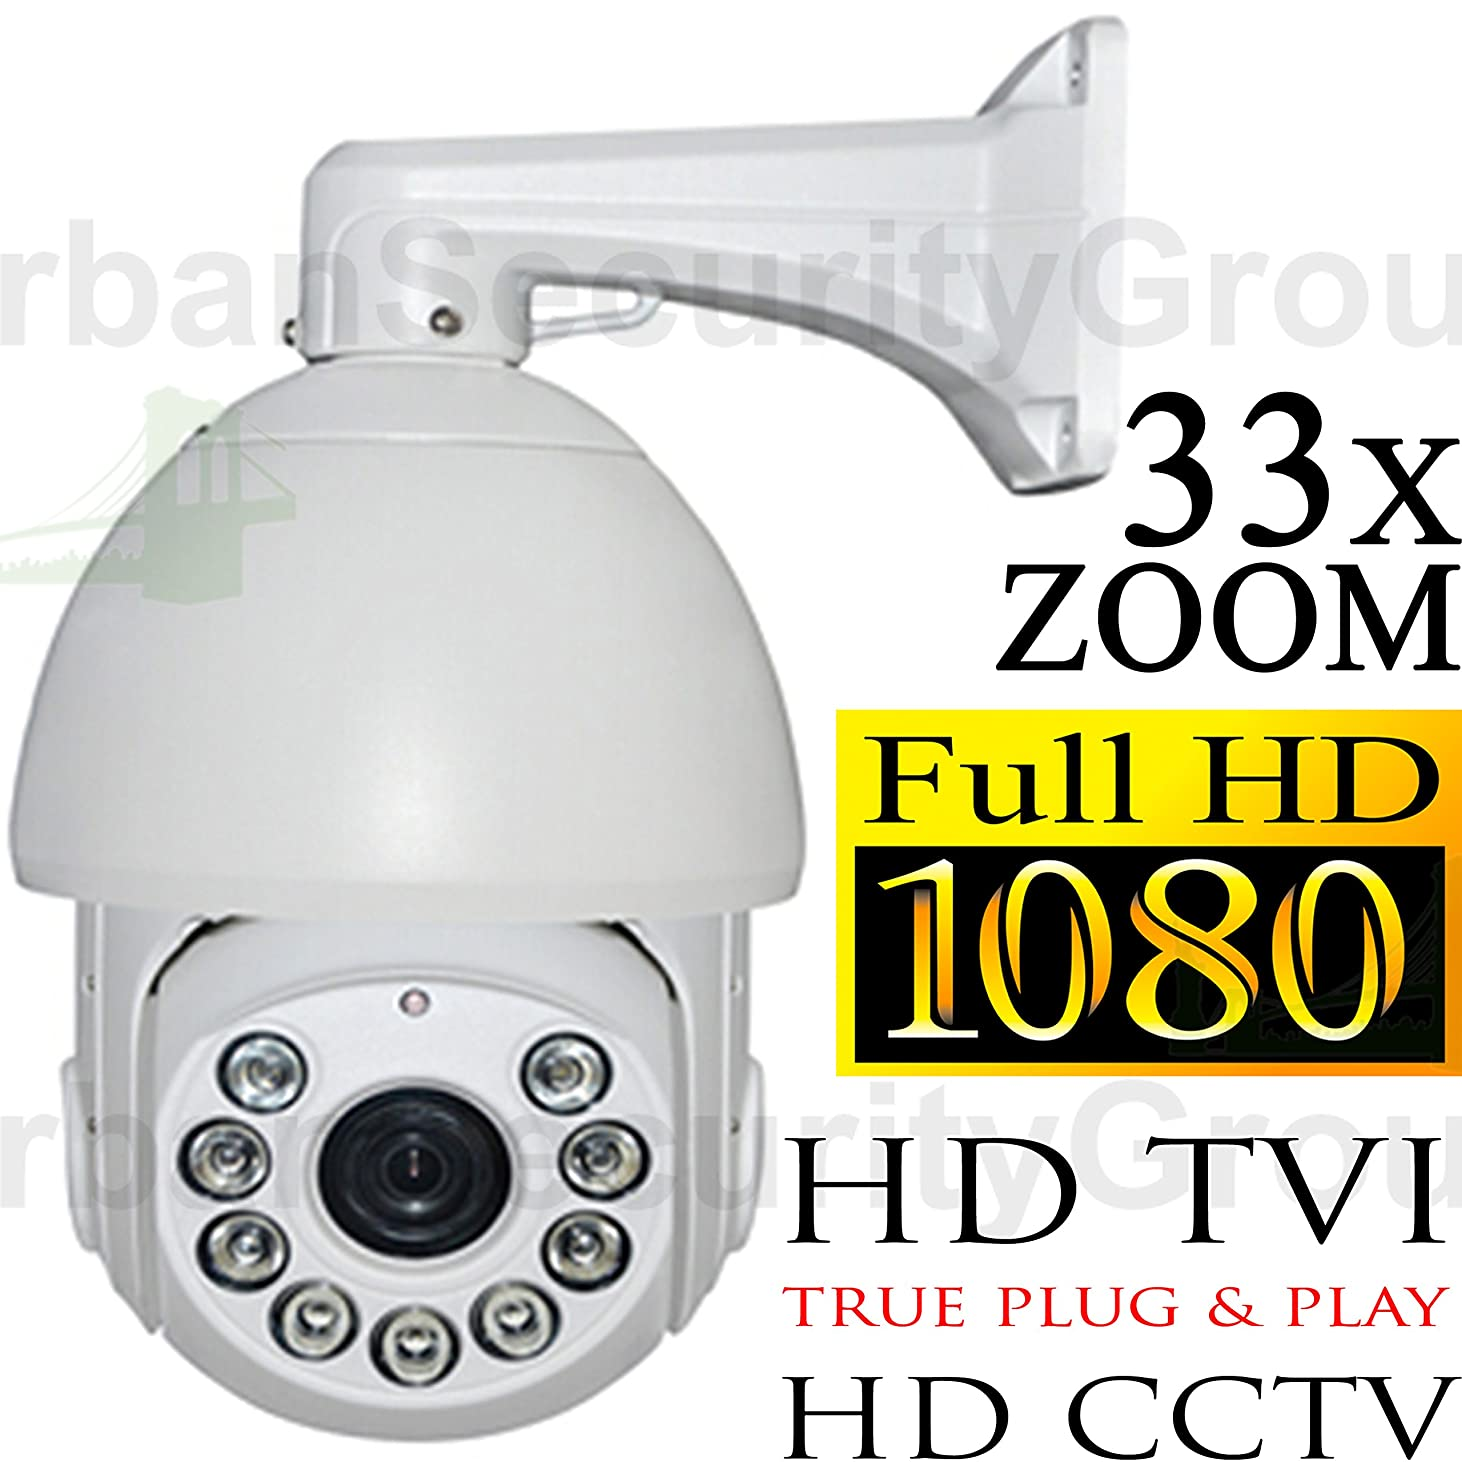 USG HD-TVI PTZ 33x Optical Zoom Speed Dome Security Camera 1080P 2MP 4.7-155mm Motorized + Auto-Focus Lens: 1920x1080, 500ft Night Vision, IR-Cut, WDR, Motion Detection, DNR, Precision Drive Motor hjhqb264701